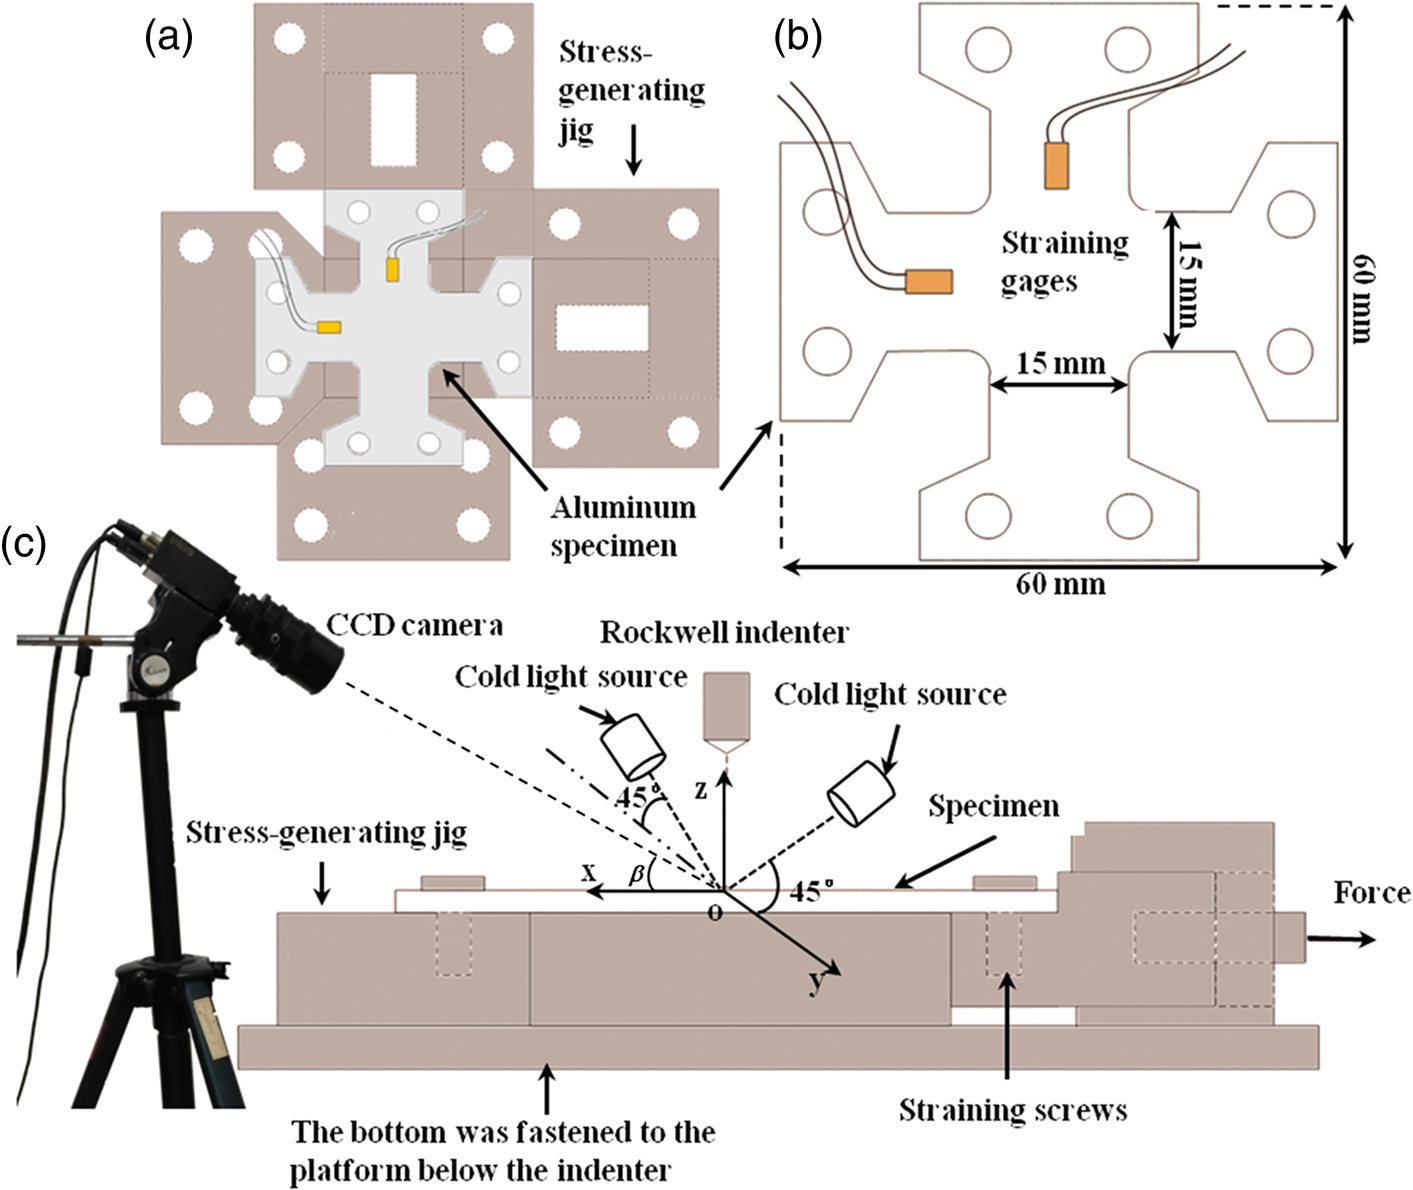 Residual Stress Measurement Via Digital Image Correlation And Sharp Circuit Diagrams Ndt Resources Center Orthogonal Loading Axes B Cruciform Specimen With Two Strain Gauges Mounted On Beams C Schematic Diagram Of Experimental Process